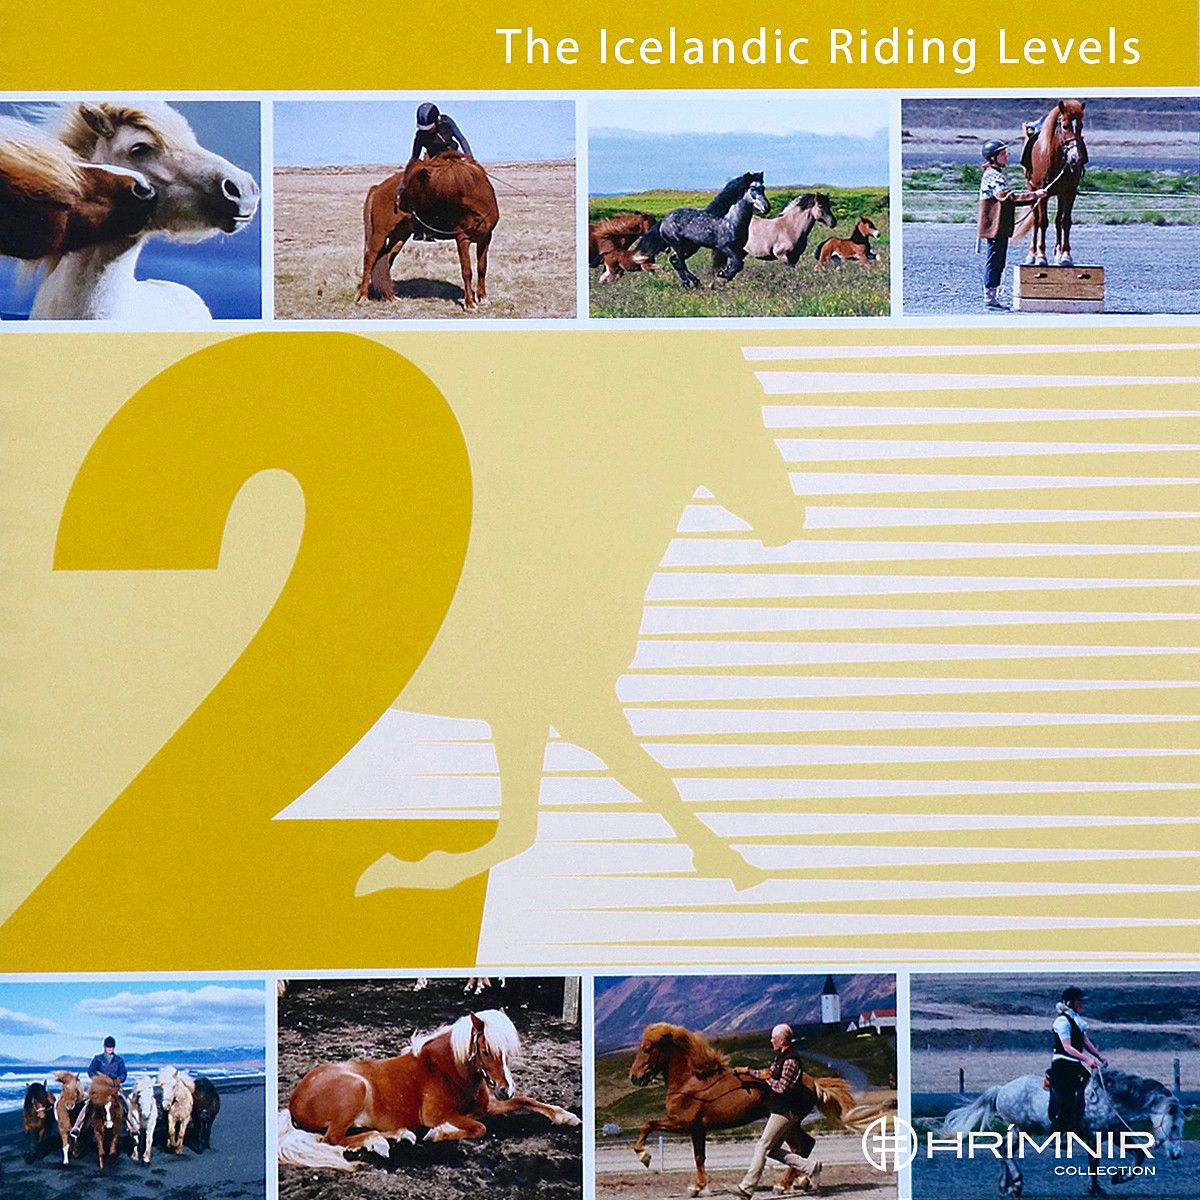 The Icelandic Riding Levels 2